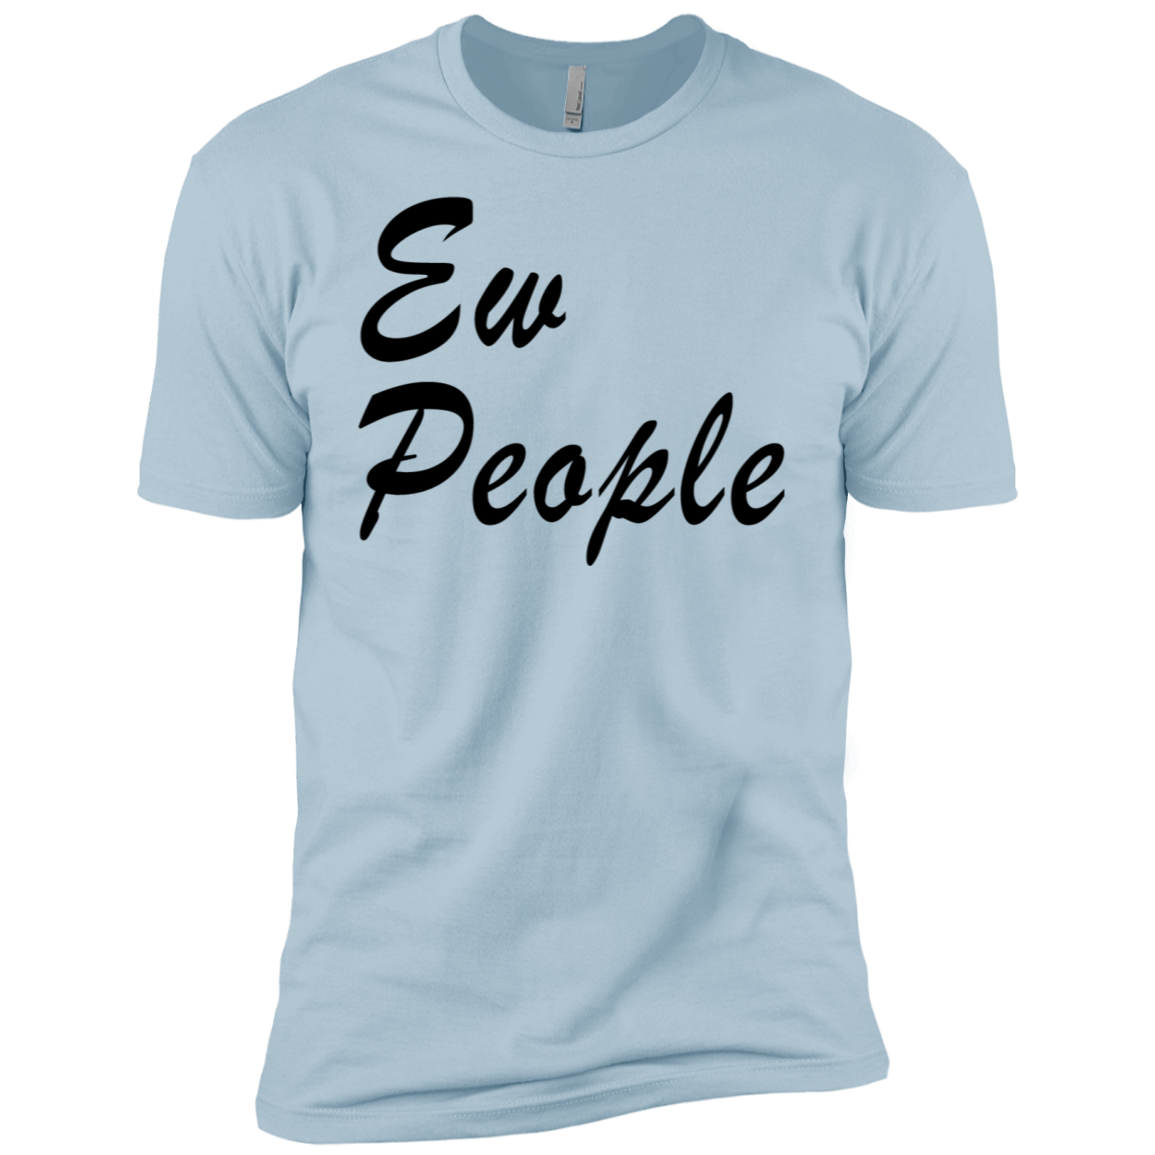 Ew People Men's Classic Tee